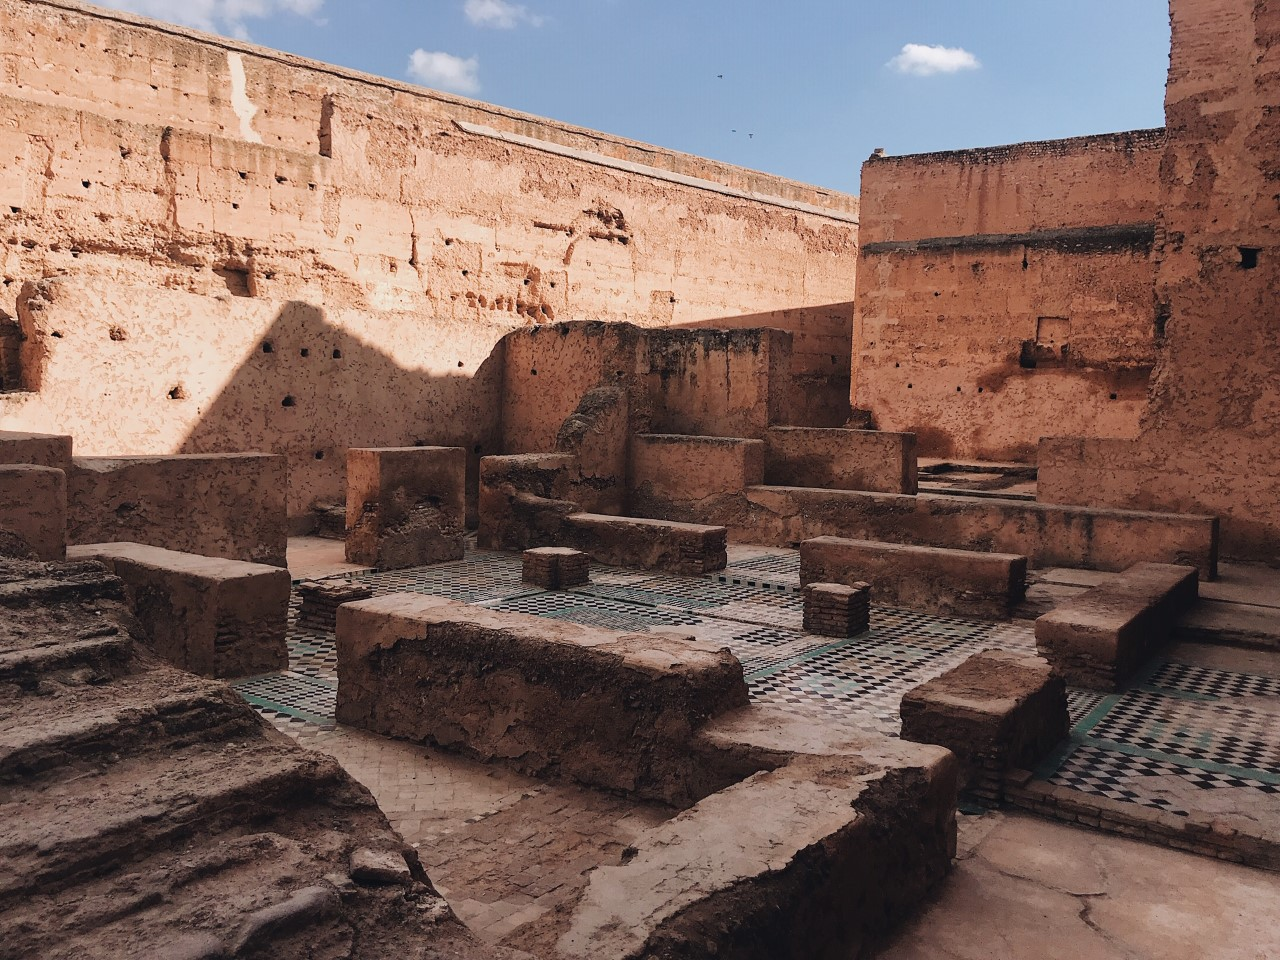 El Badi Palace, Marrakech - one of the top attractions in Marrakech